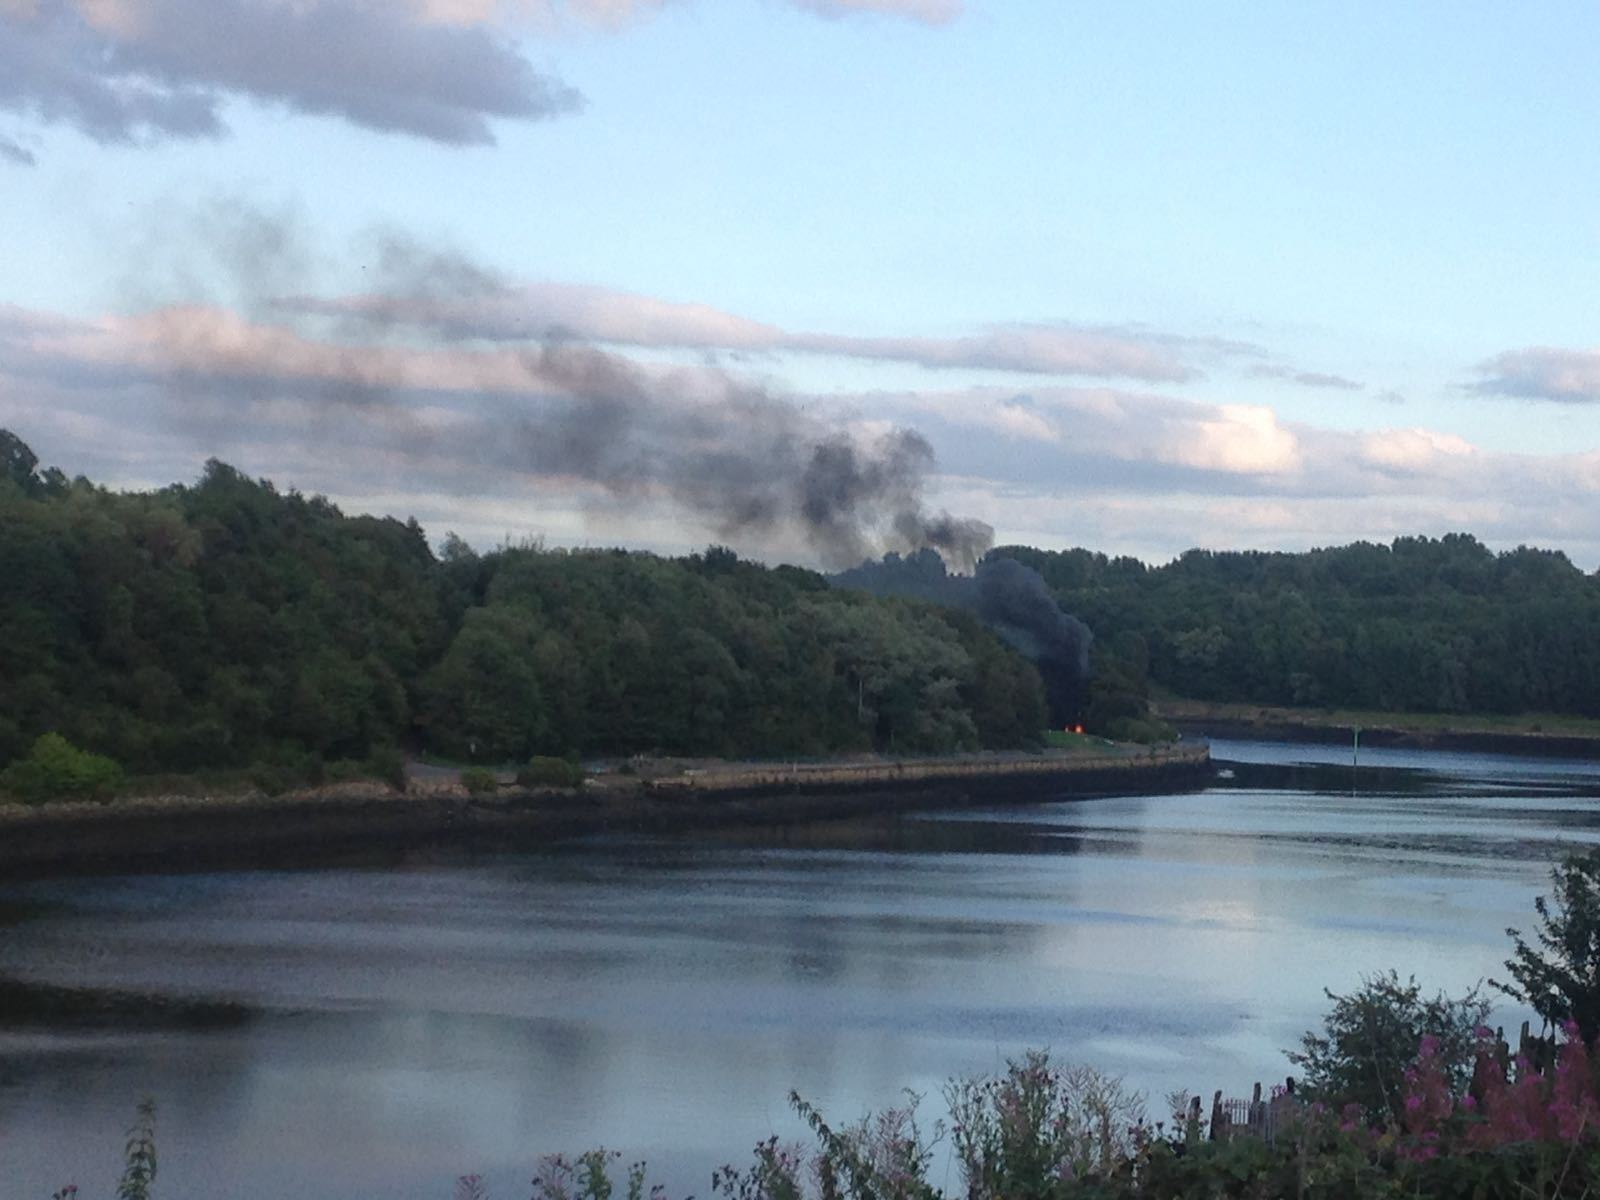 FIRE: Smoke billowing from the flaming car on the banks of the River Tyne in the Walker area of Newcastle Picture: GAVIN ENGELBRECHT